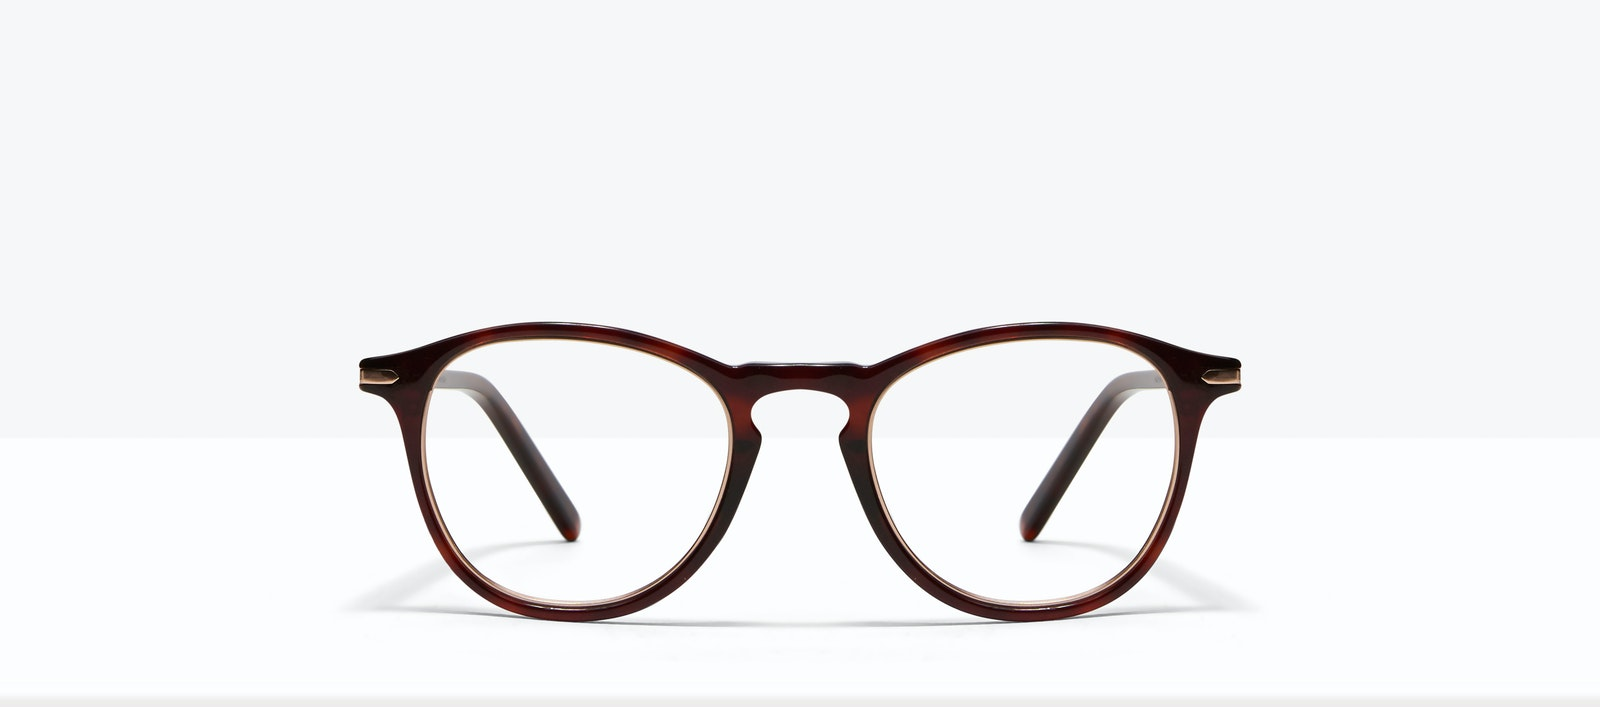 Affordable Fashion Glasses Round Eyeglasses Men Looks Tortoise Front